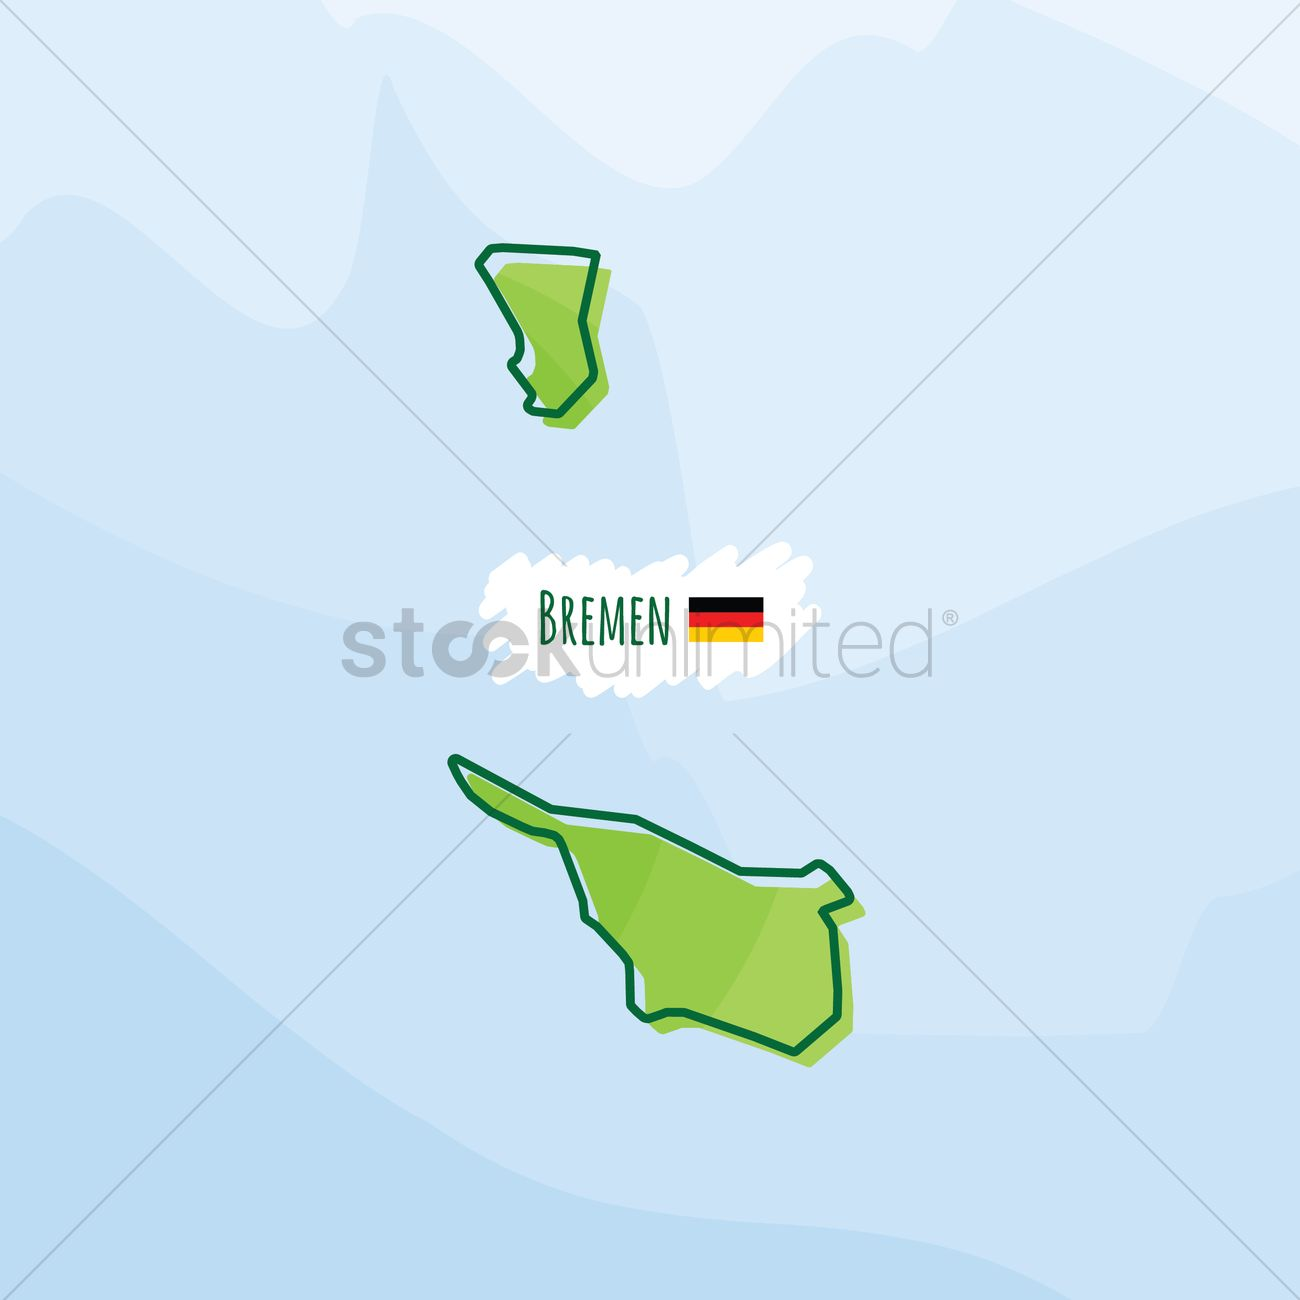 Map of bremen, germany Vector Image - 1980523 | StockUnlimited